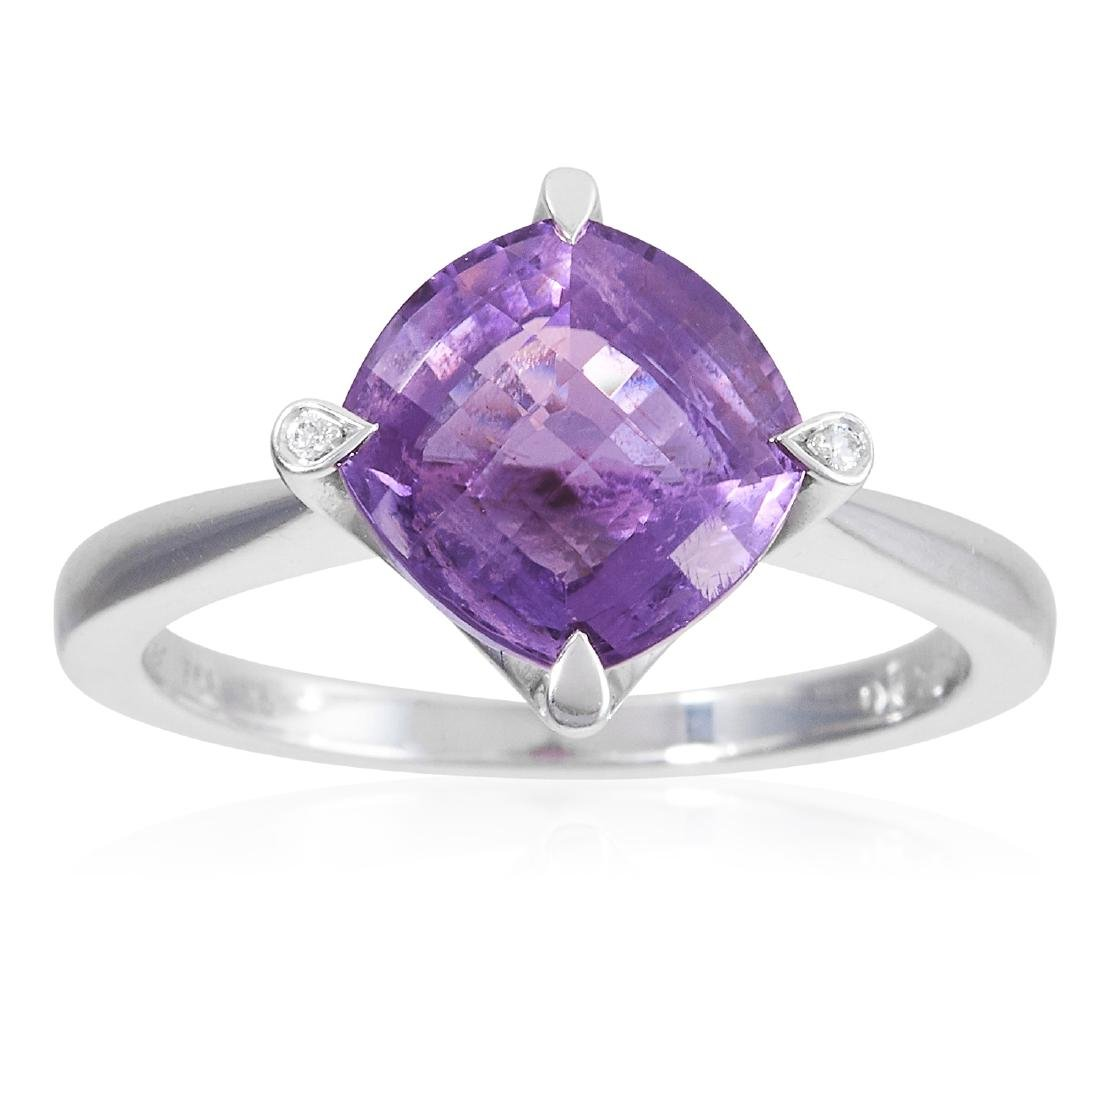 AN AMETHYST AND DIAMOND DRESS RING, CARTIER in 18ct